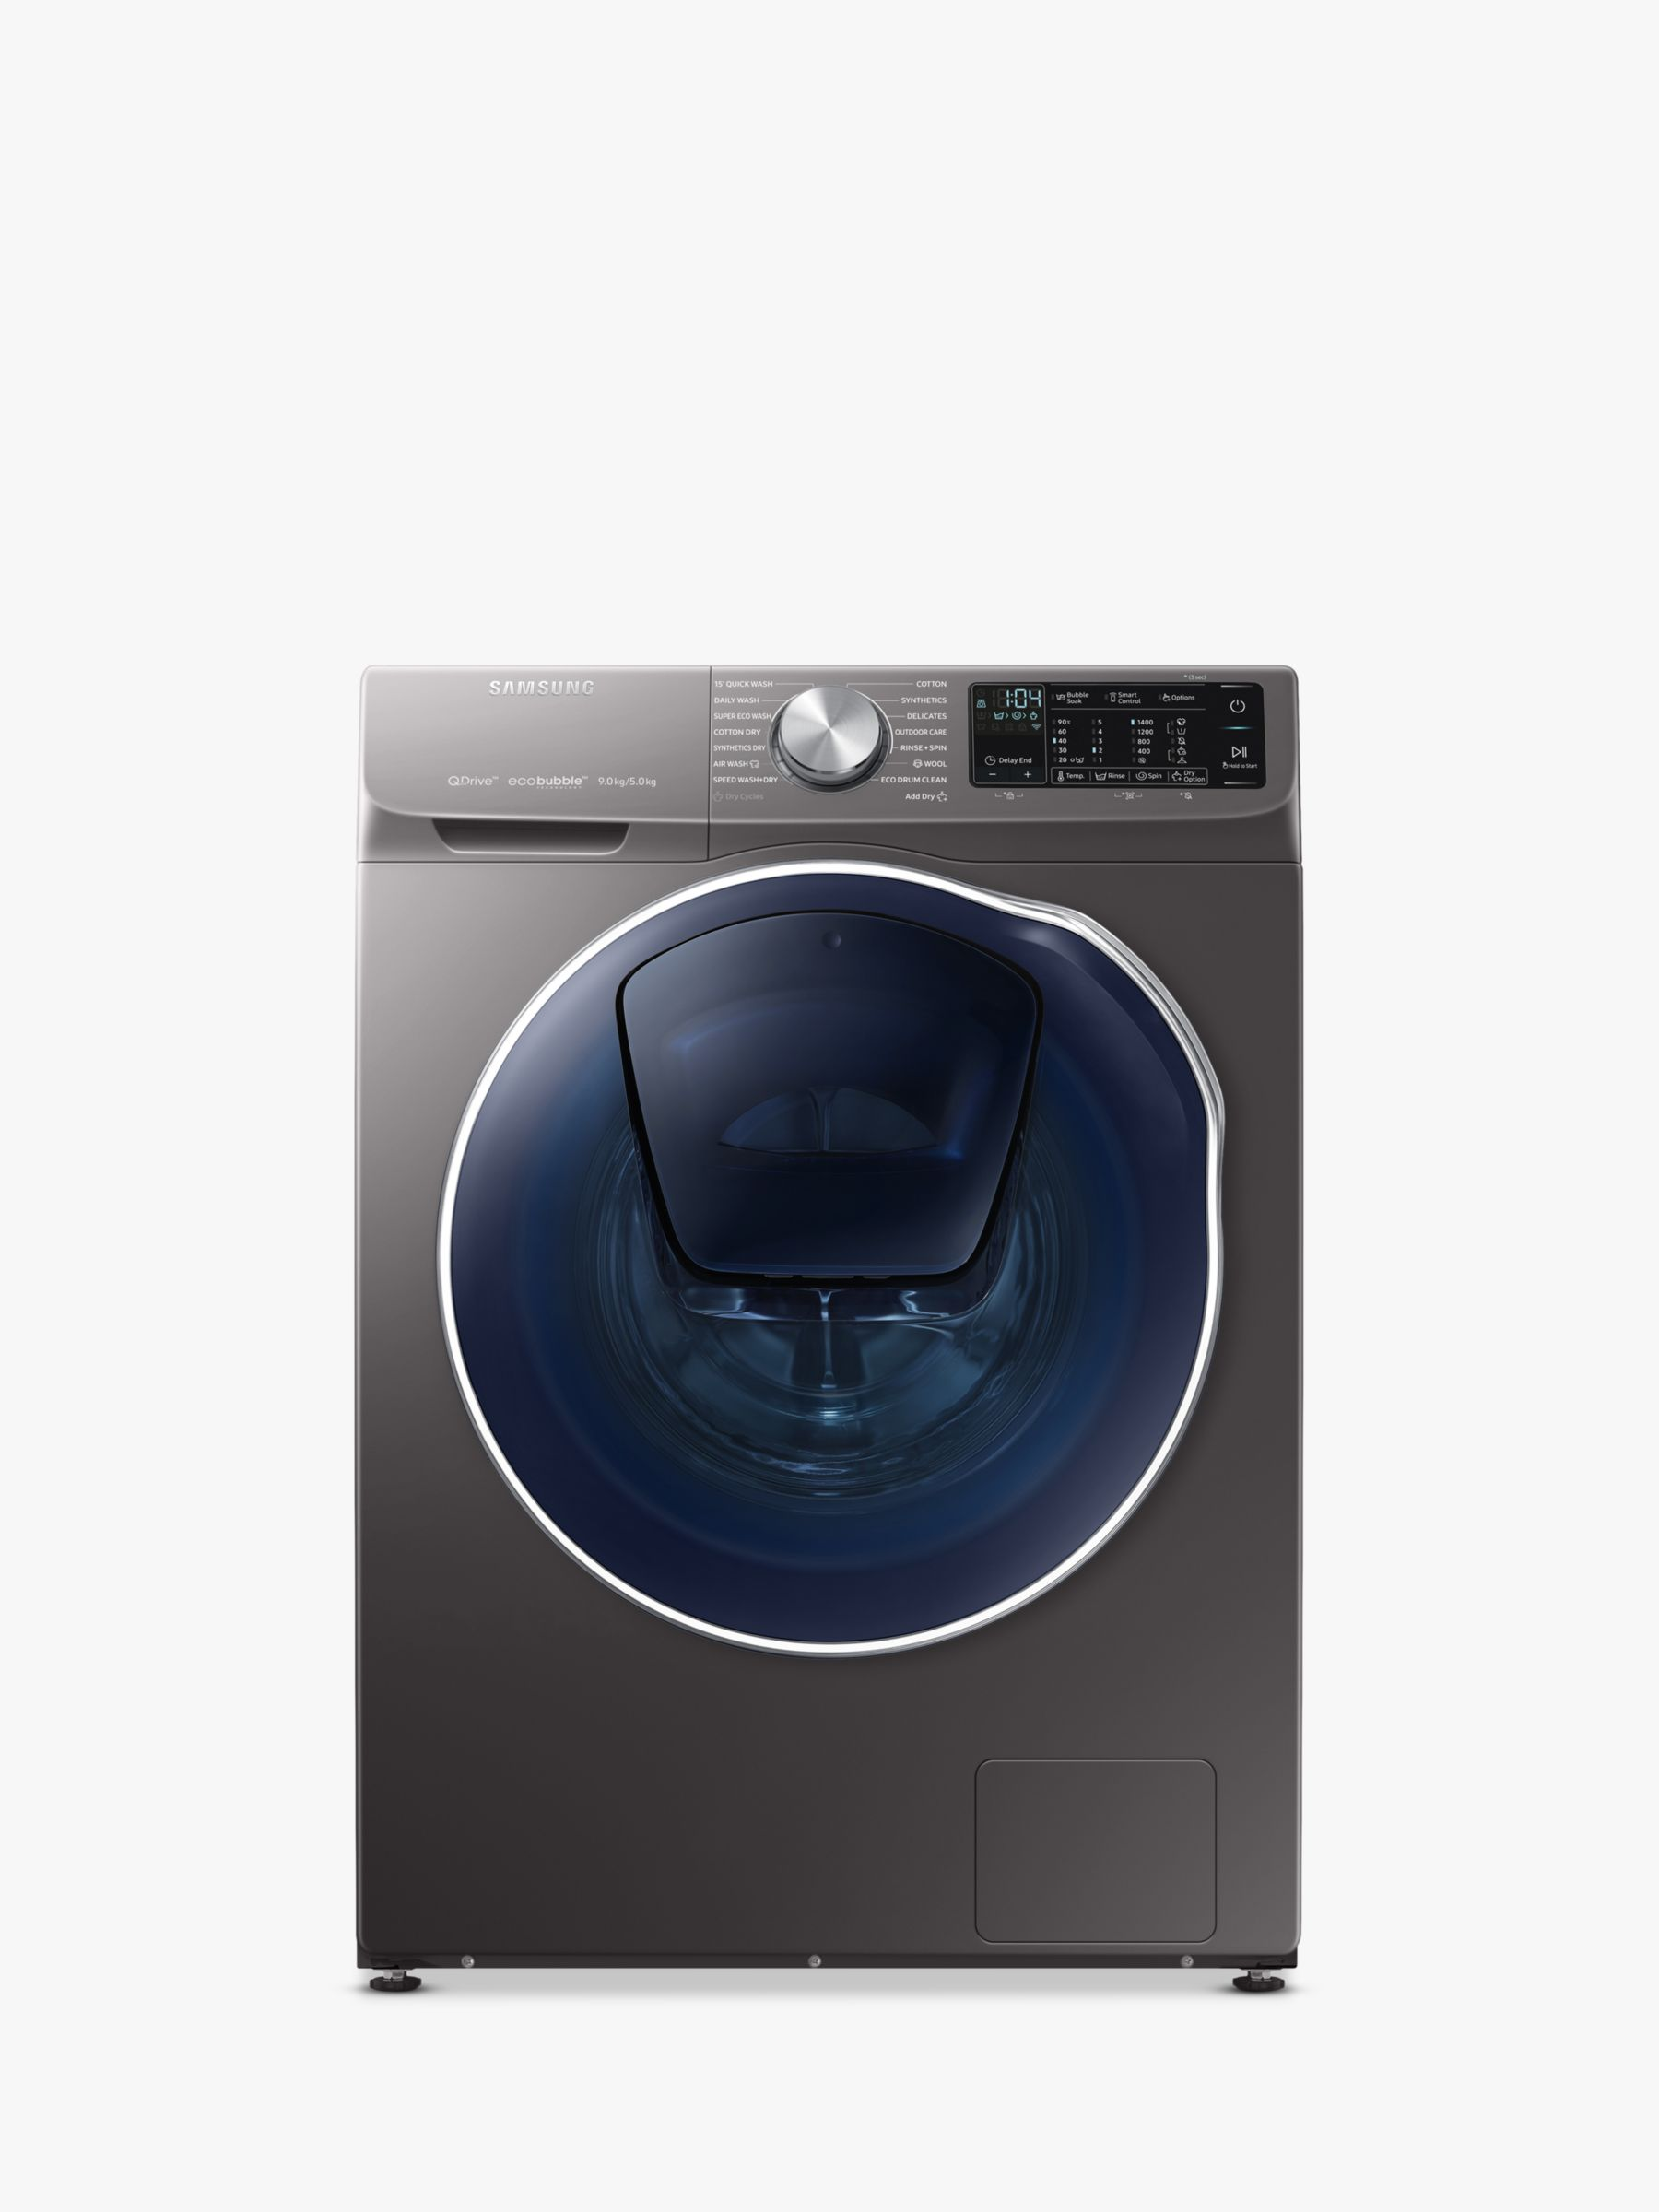 Samsung Samsung QuickDrive WD90N645OOX/EU Freestanding Washer Dryer with AddWash, 9kg Wash/5kg Dry Load, A Energy Rating, 1400rpm Spin, Graphite